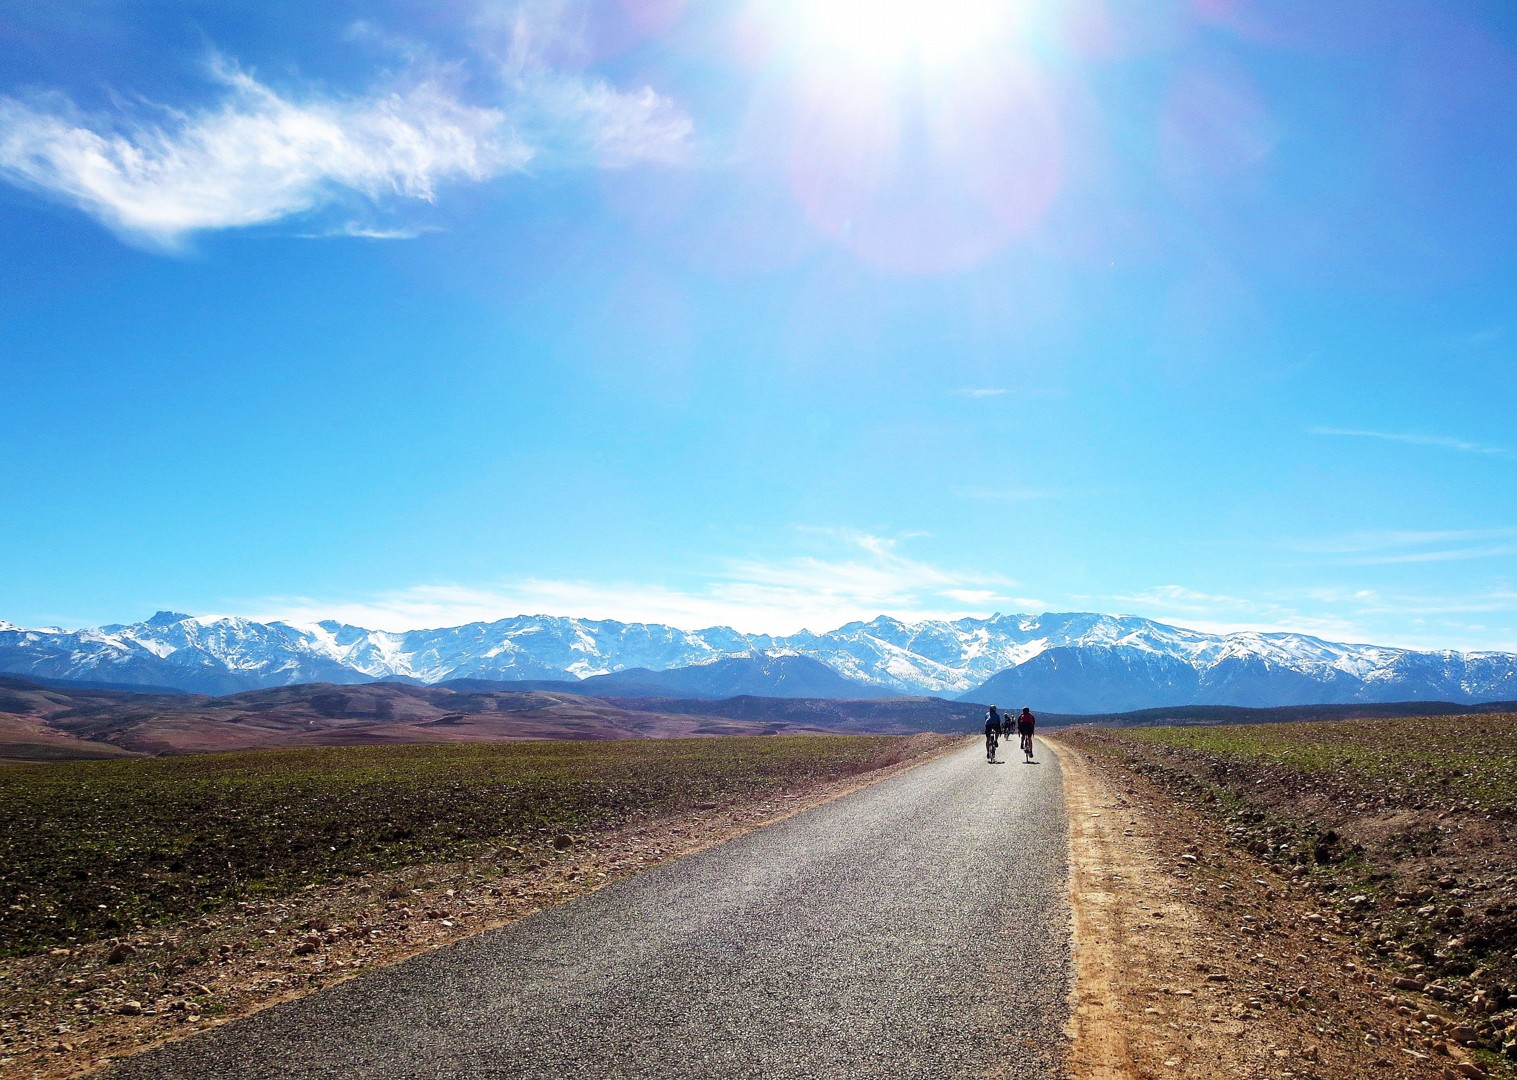 stunning-mountain-scenery-cycling-holiday-road.jpg - Morocco - Road Atlas - Road Cycling